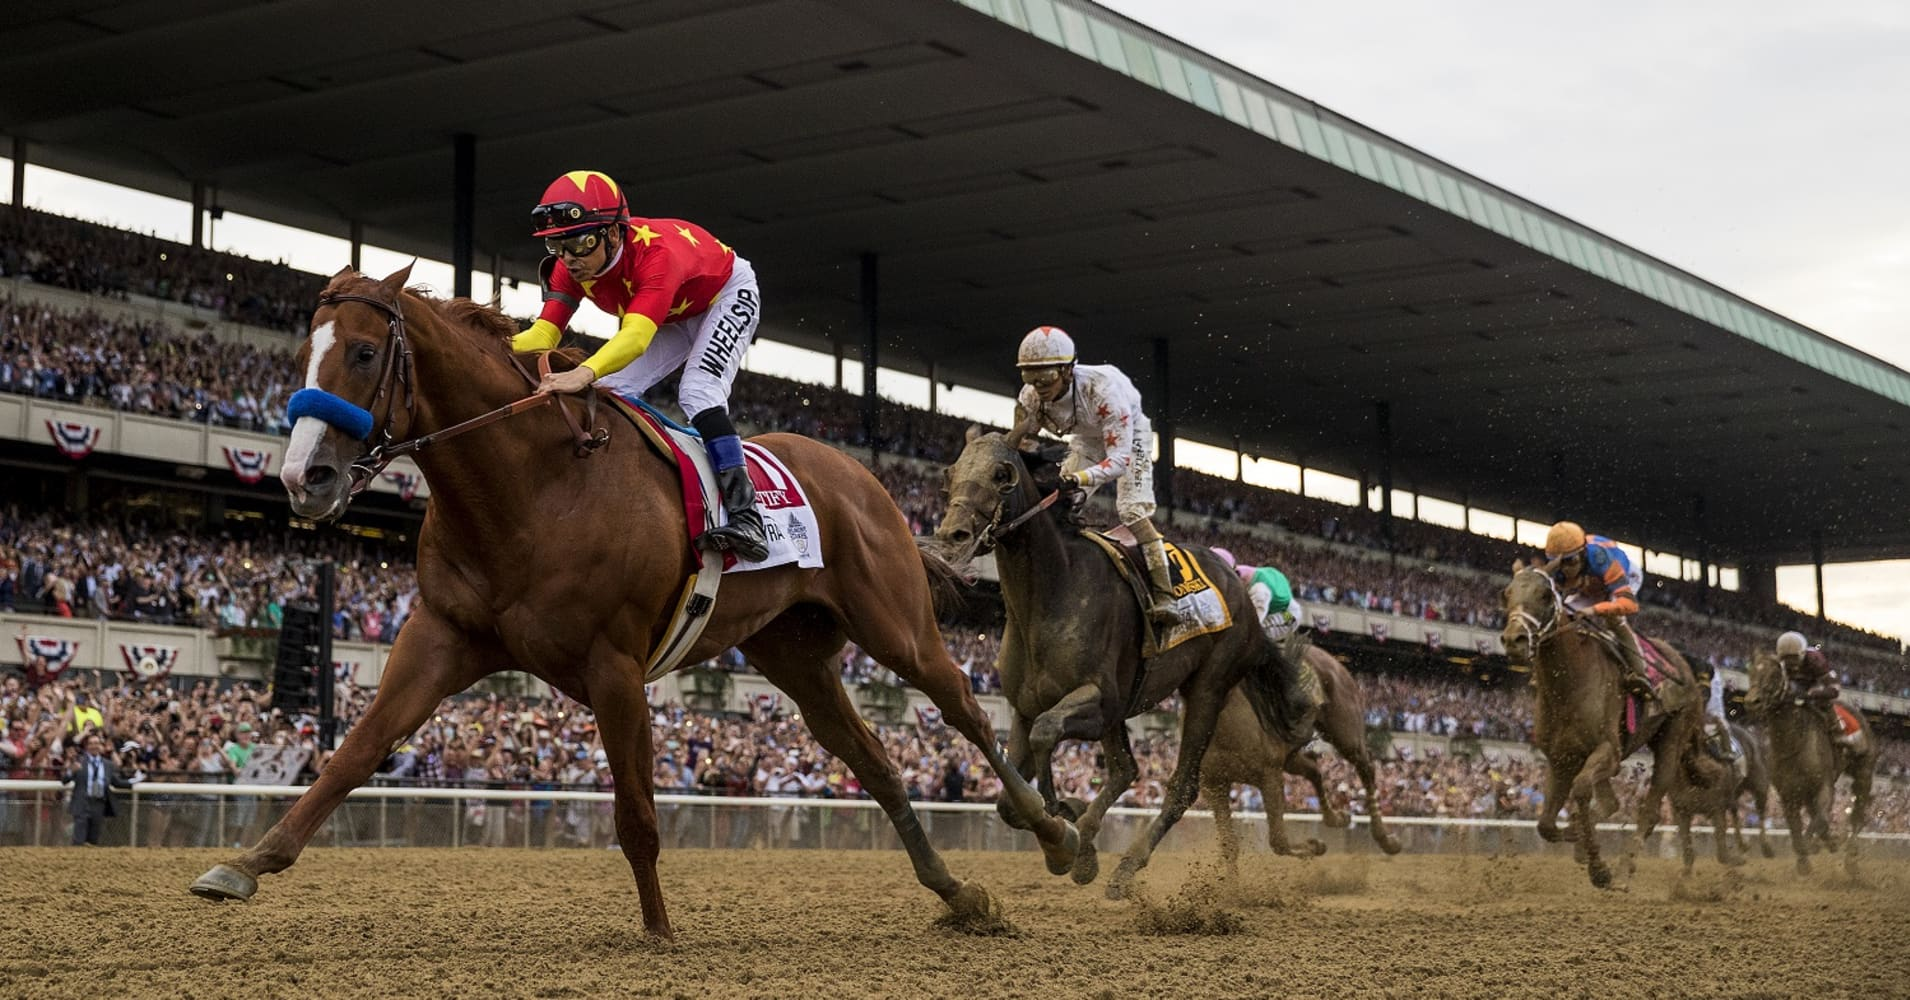 Justify #1 with Mike Smith aboard defeats Gronkowski #6 Jose Ortiz to win the 150th Belmont Stakes